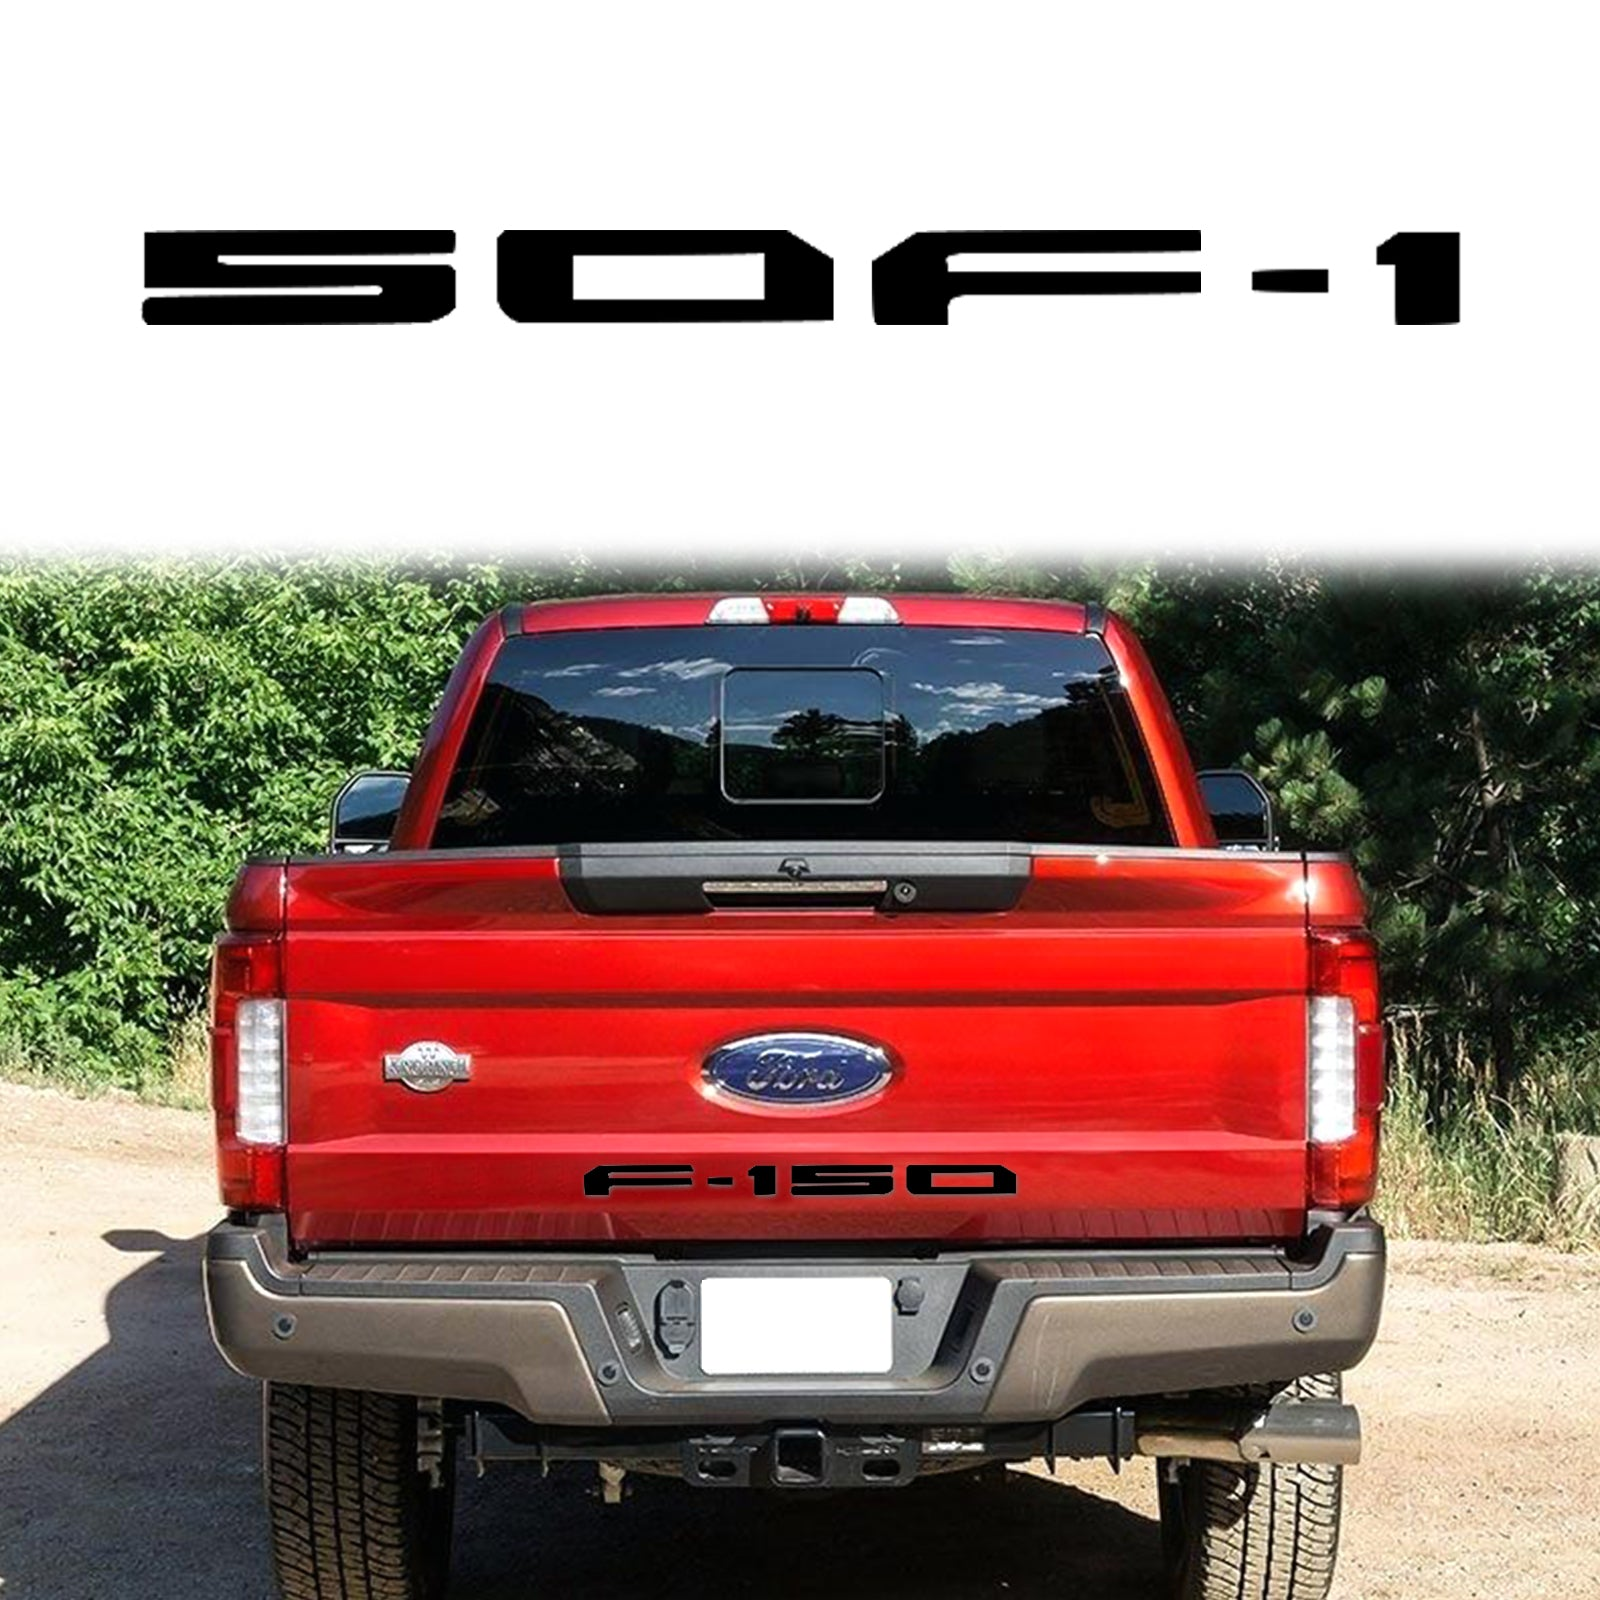 Xotic Tech F-150 Letter Decal Tailgate Die-Cut Insert Vinyl Sticker for Ford F-150 2018-up Brushed Silver